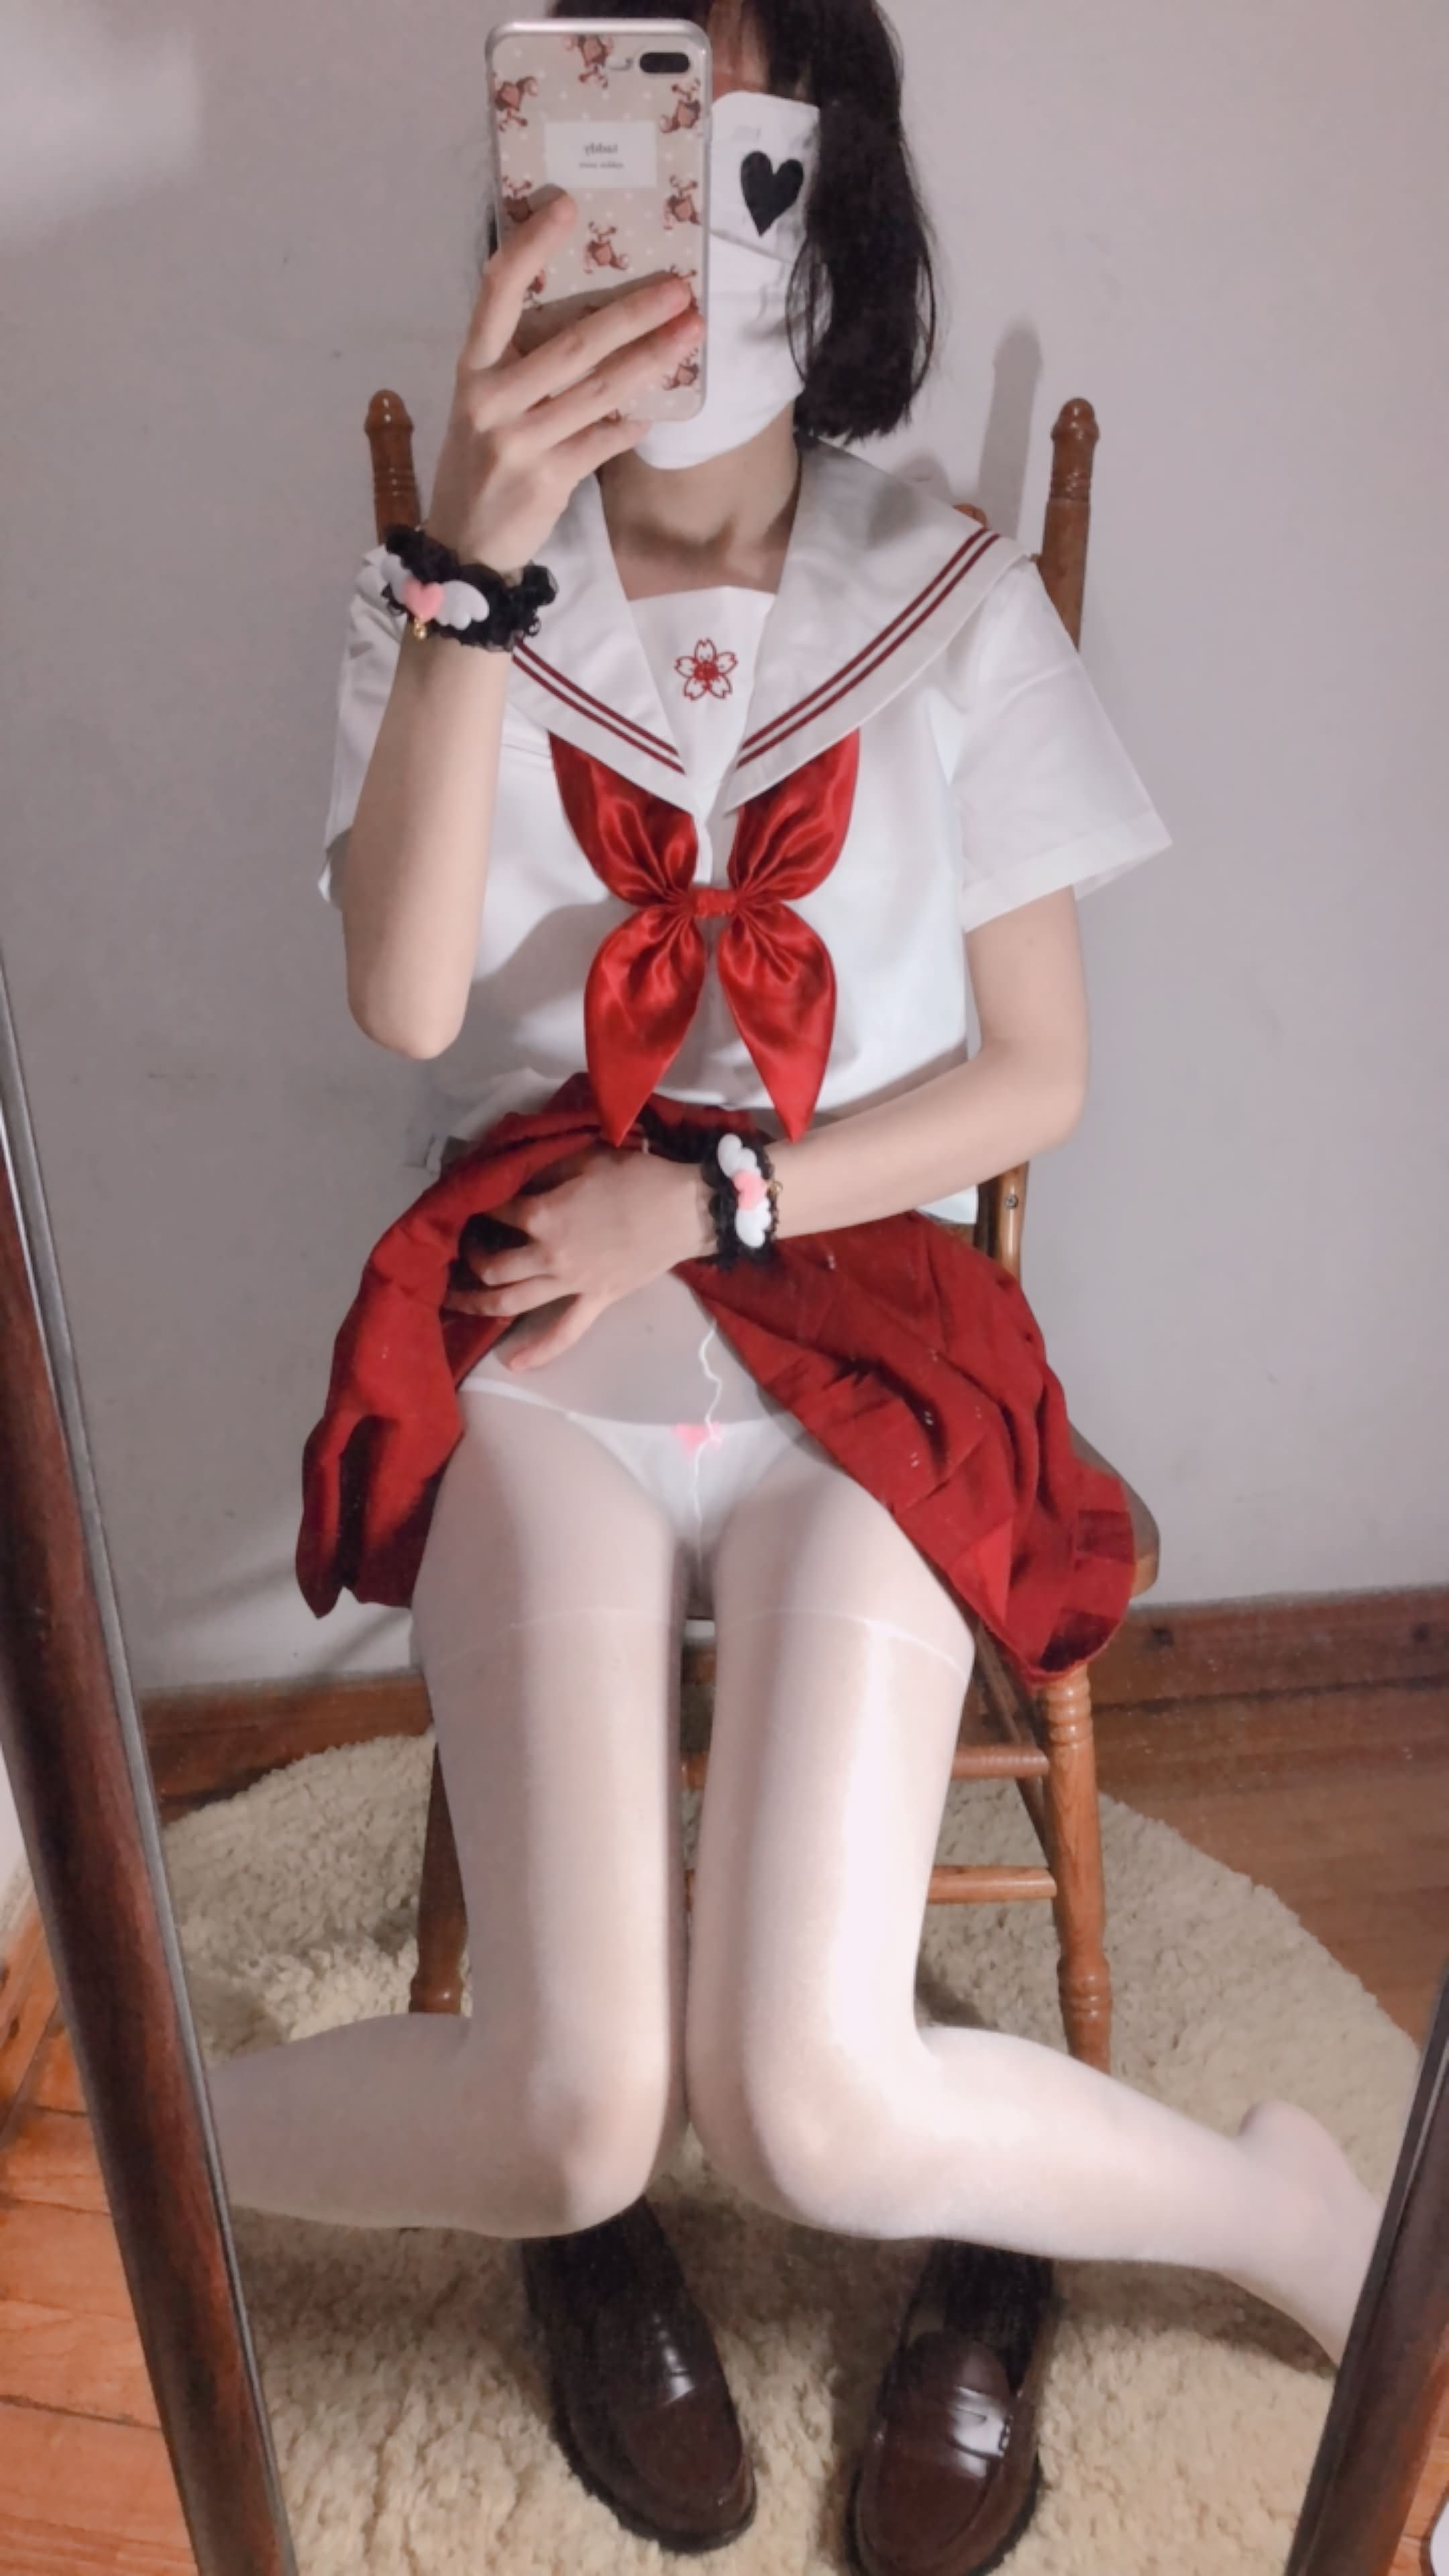 30 - Cosplay red JK uniform white stockings sweet pussy butt 小结巴-红色jk制服白丝 95P